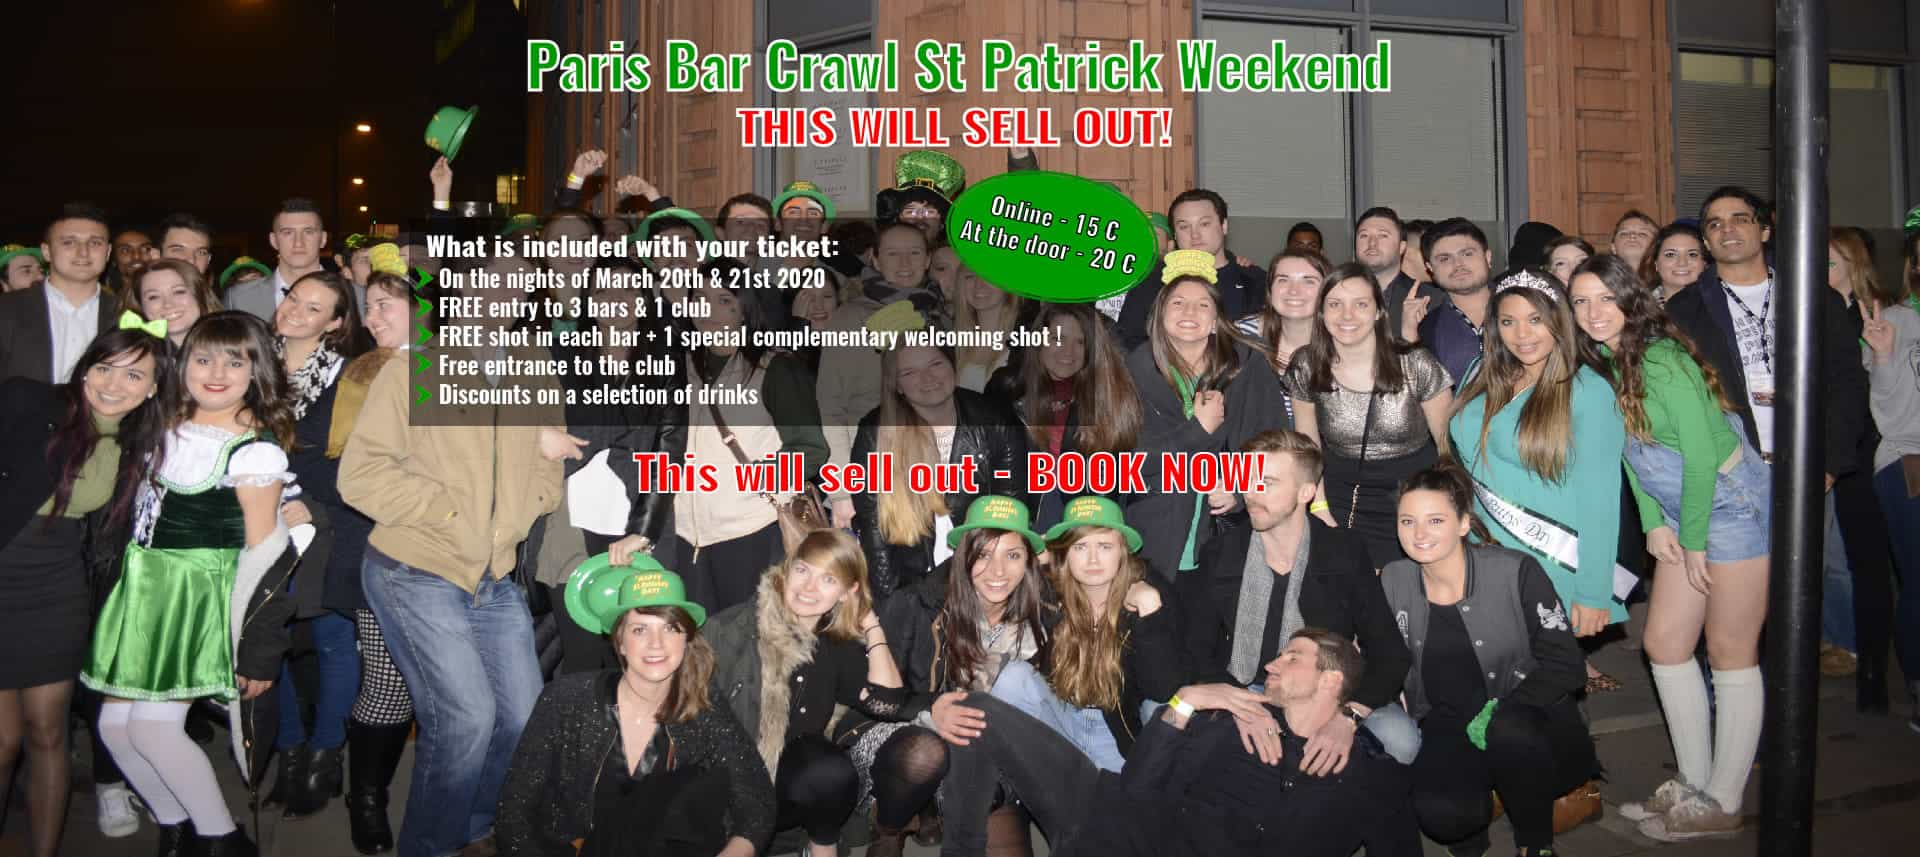 St Patrick Weekend -  Paris Bar Crawl